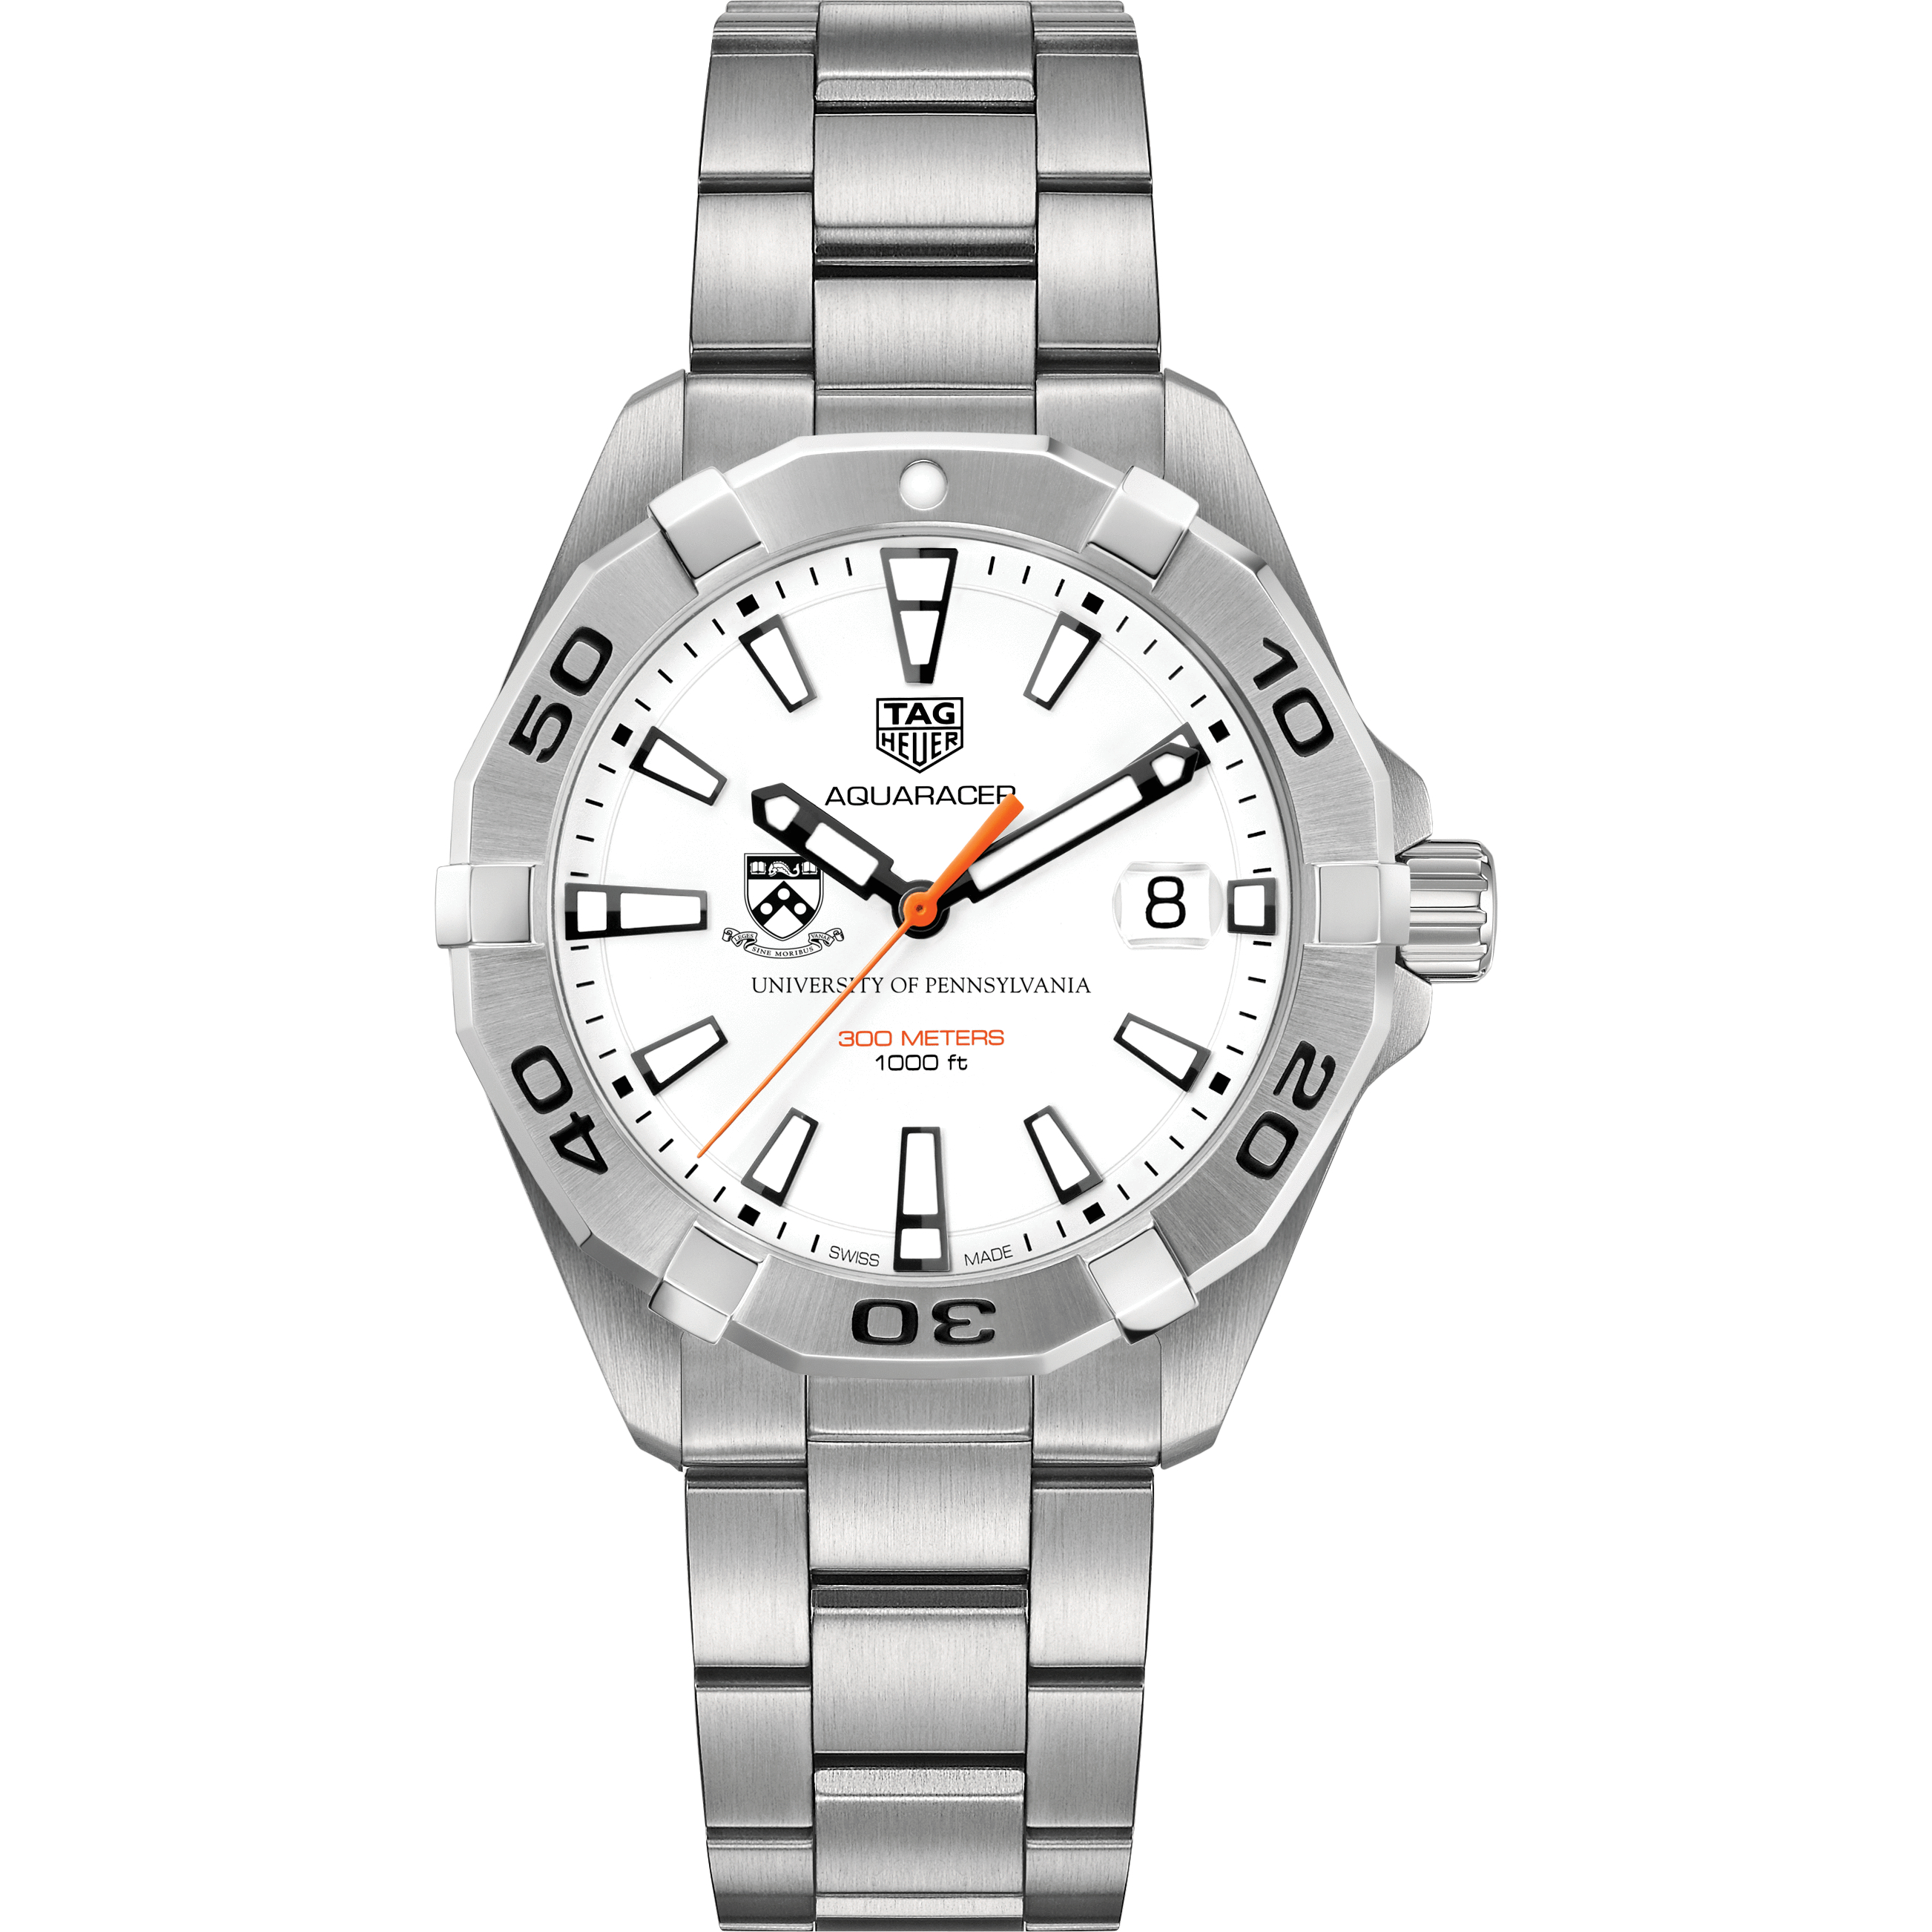 Penn Men's TAG Heuer Steel Aquaracer - Image 2